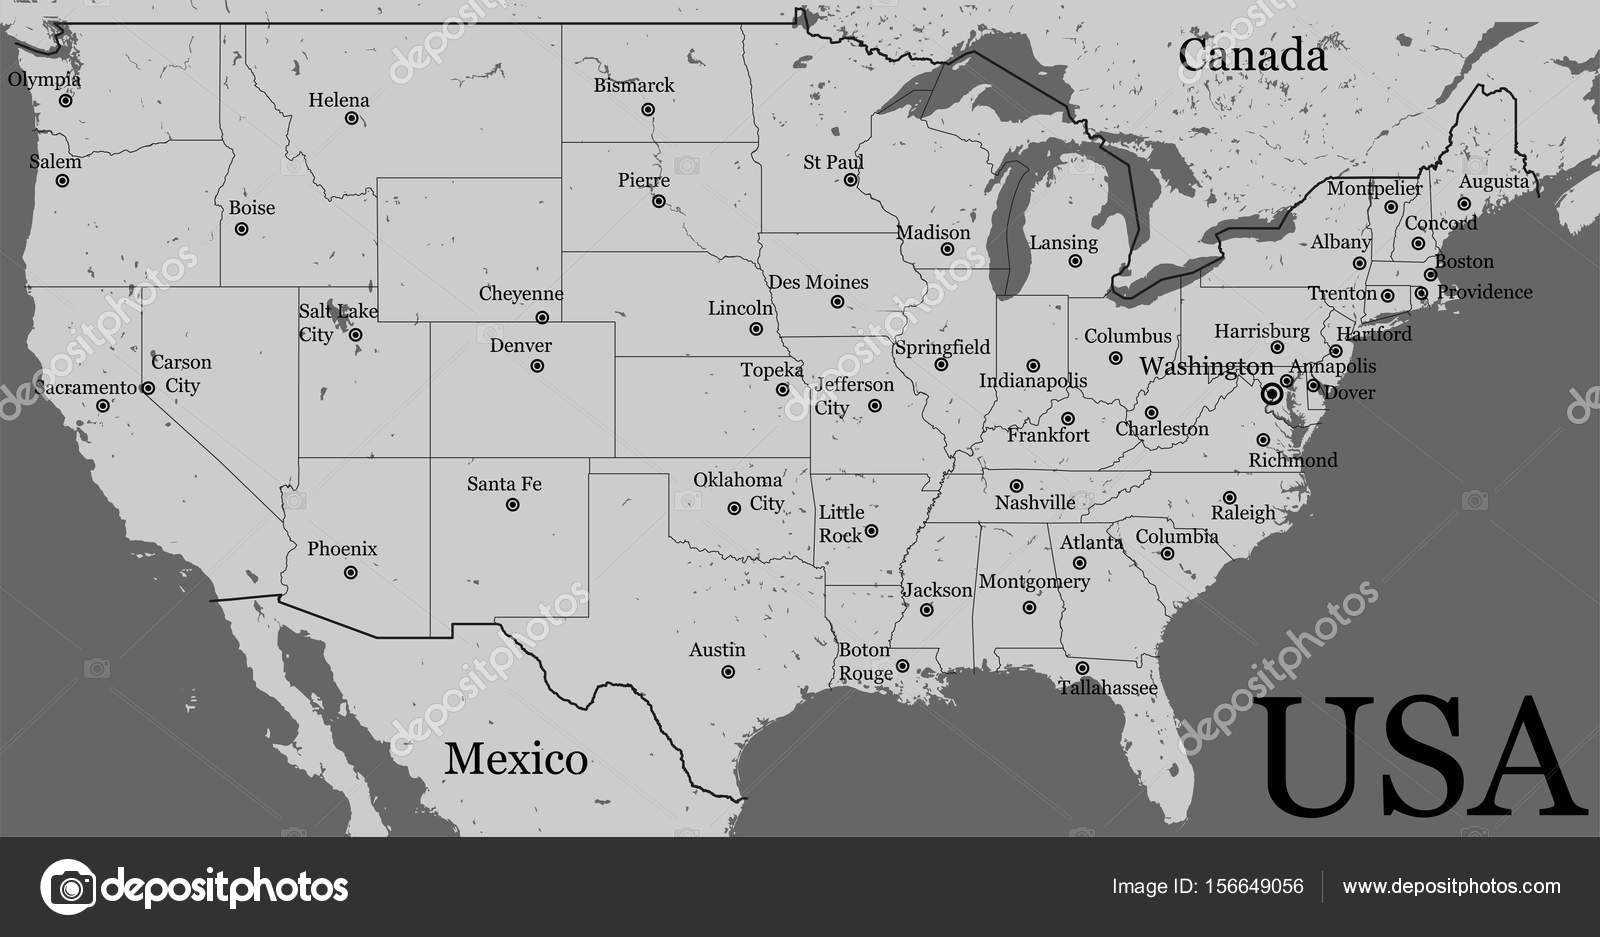 Blank USA map isolated on gray background. United States of America ...